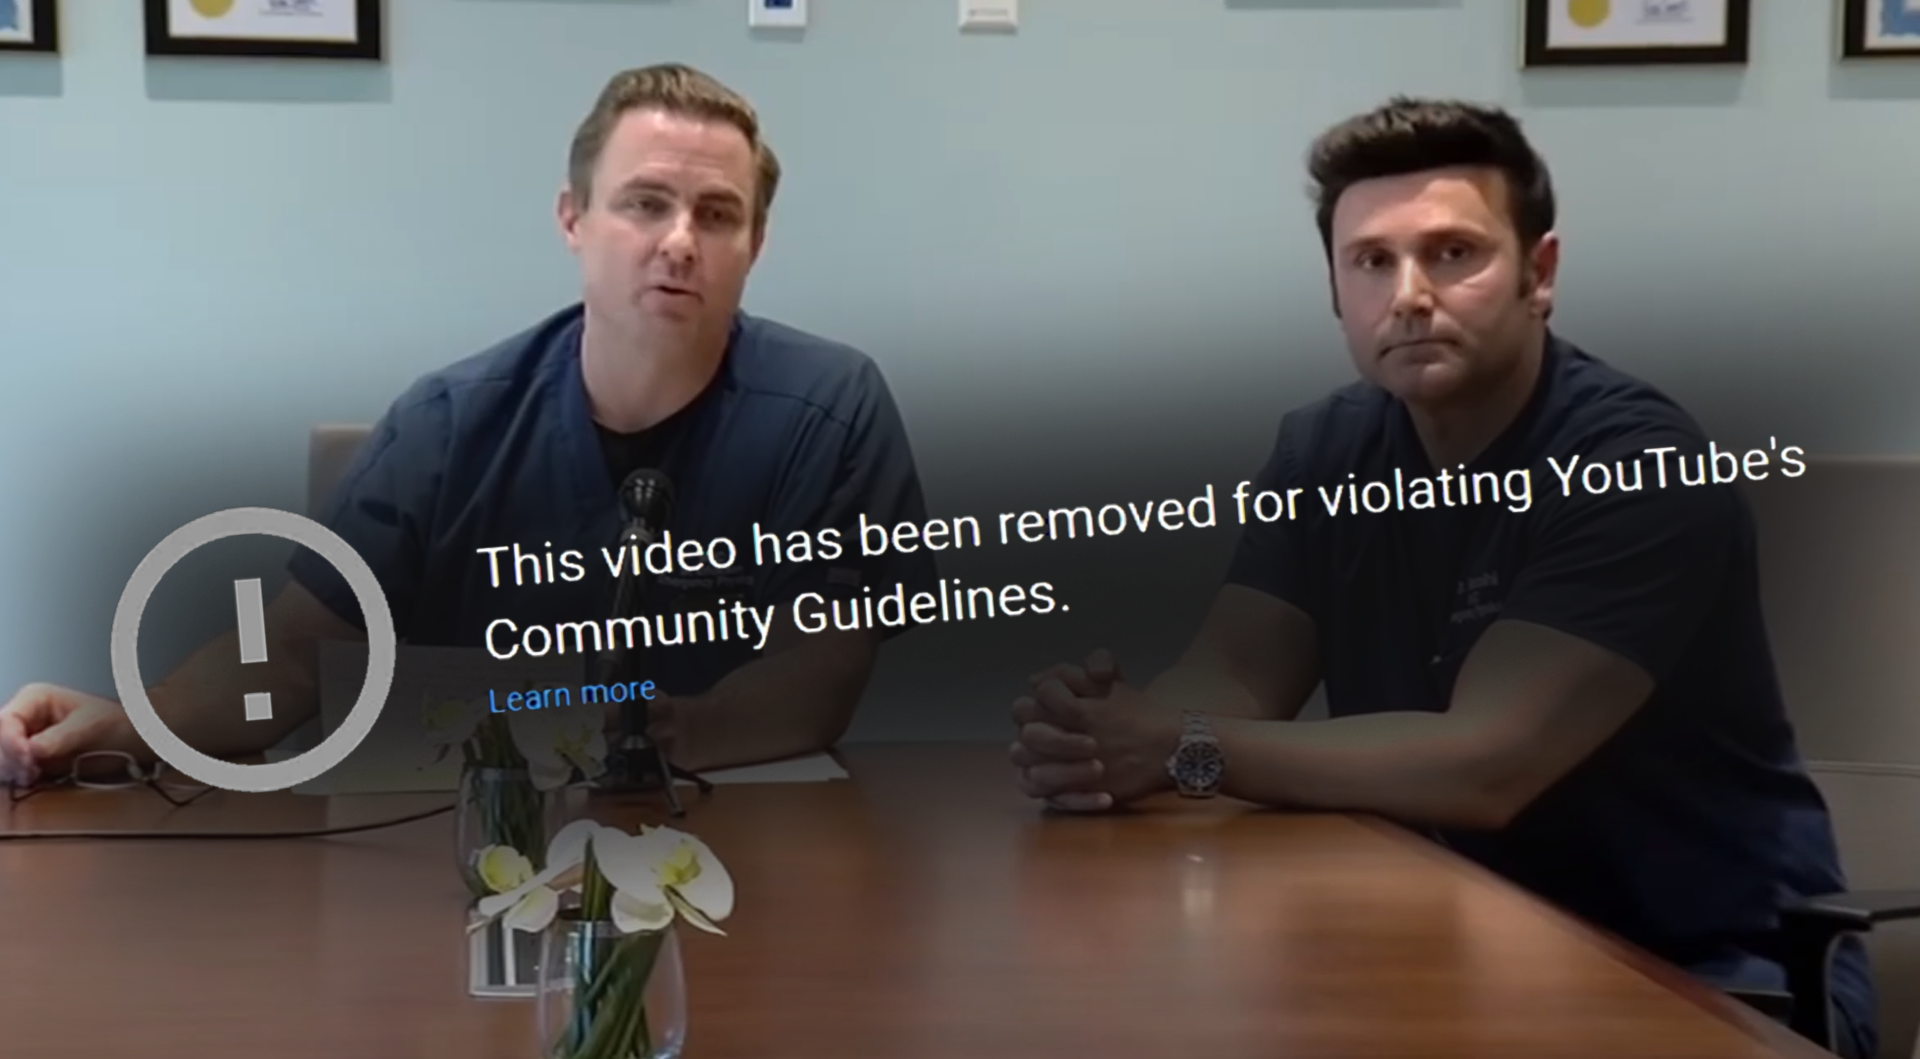 Bitscoins.net's Mining Video Censored: The Tale of Youtube's Blatant Censorship and Propaganda